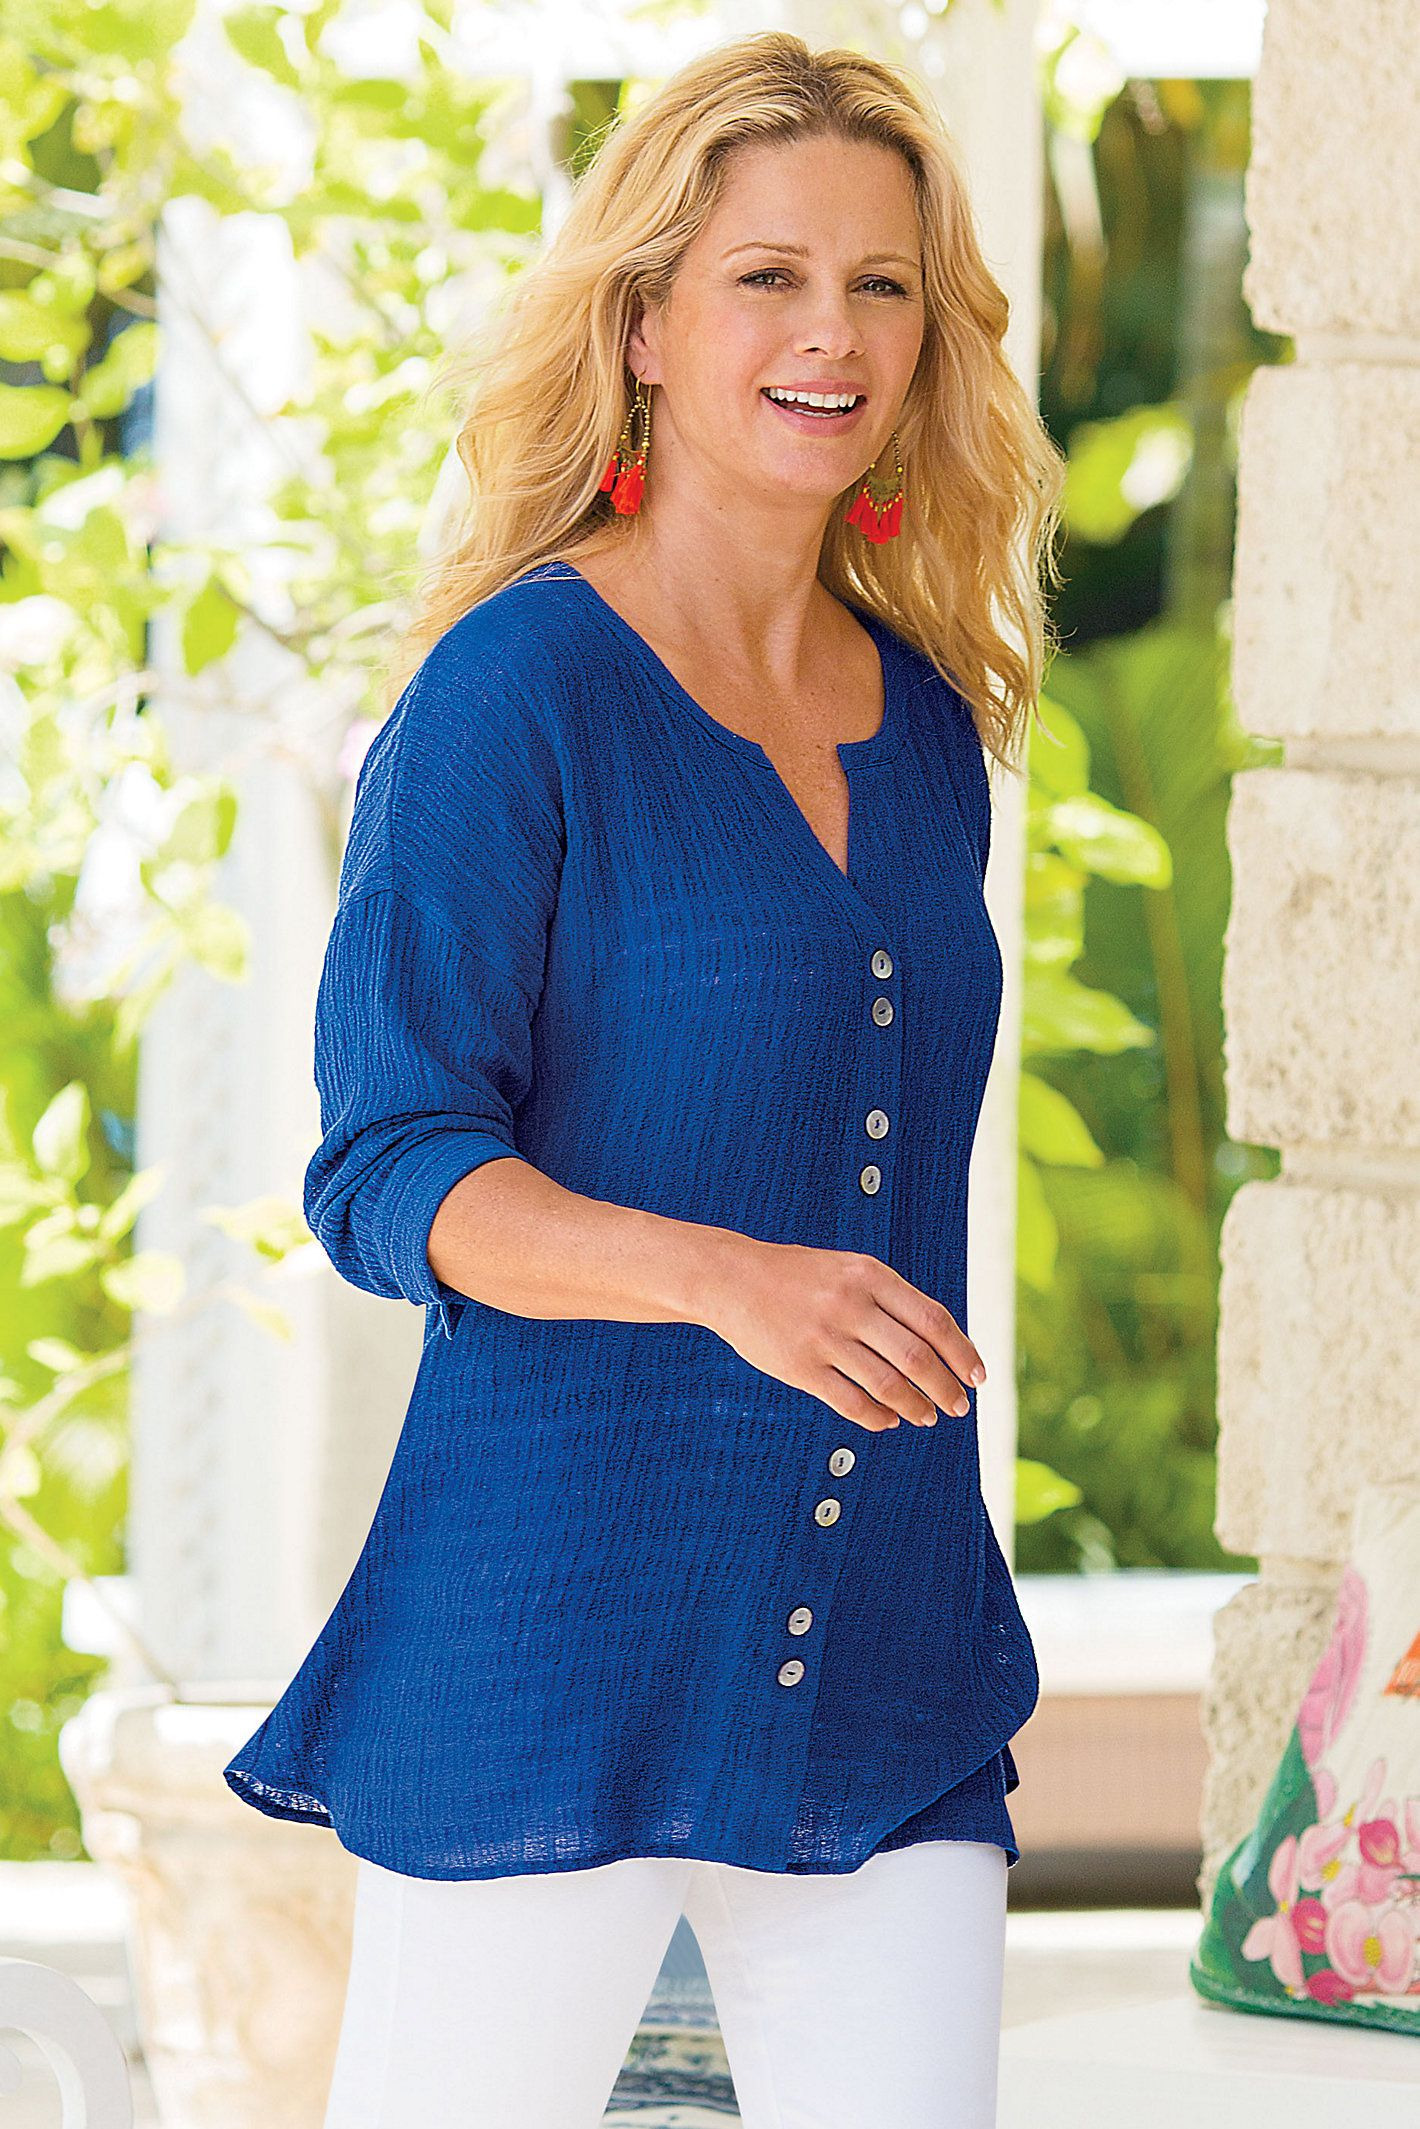 502b9dedeaf0 Lustrous pearly buttons give our Crinkled Gauze Shirt a polished look -  perfect for summer dressing!